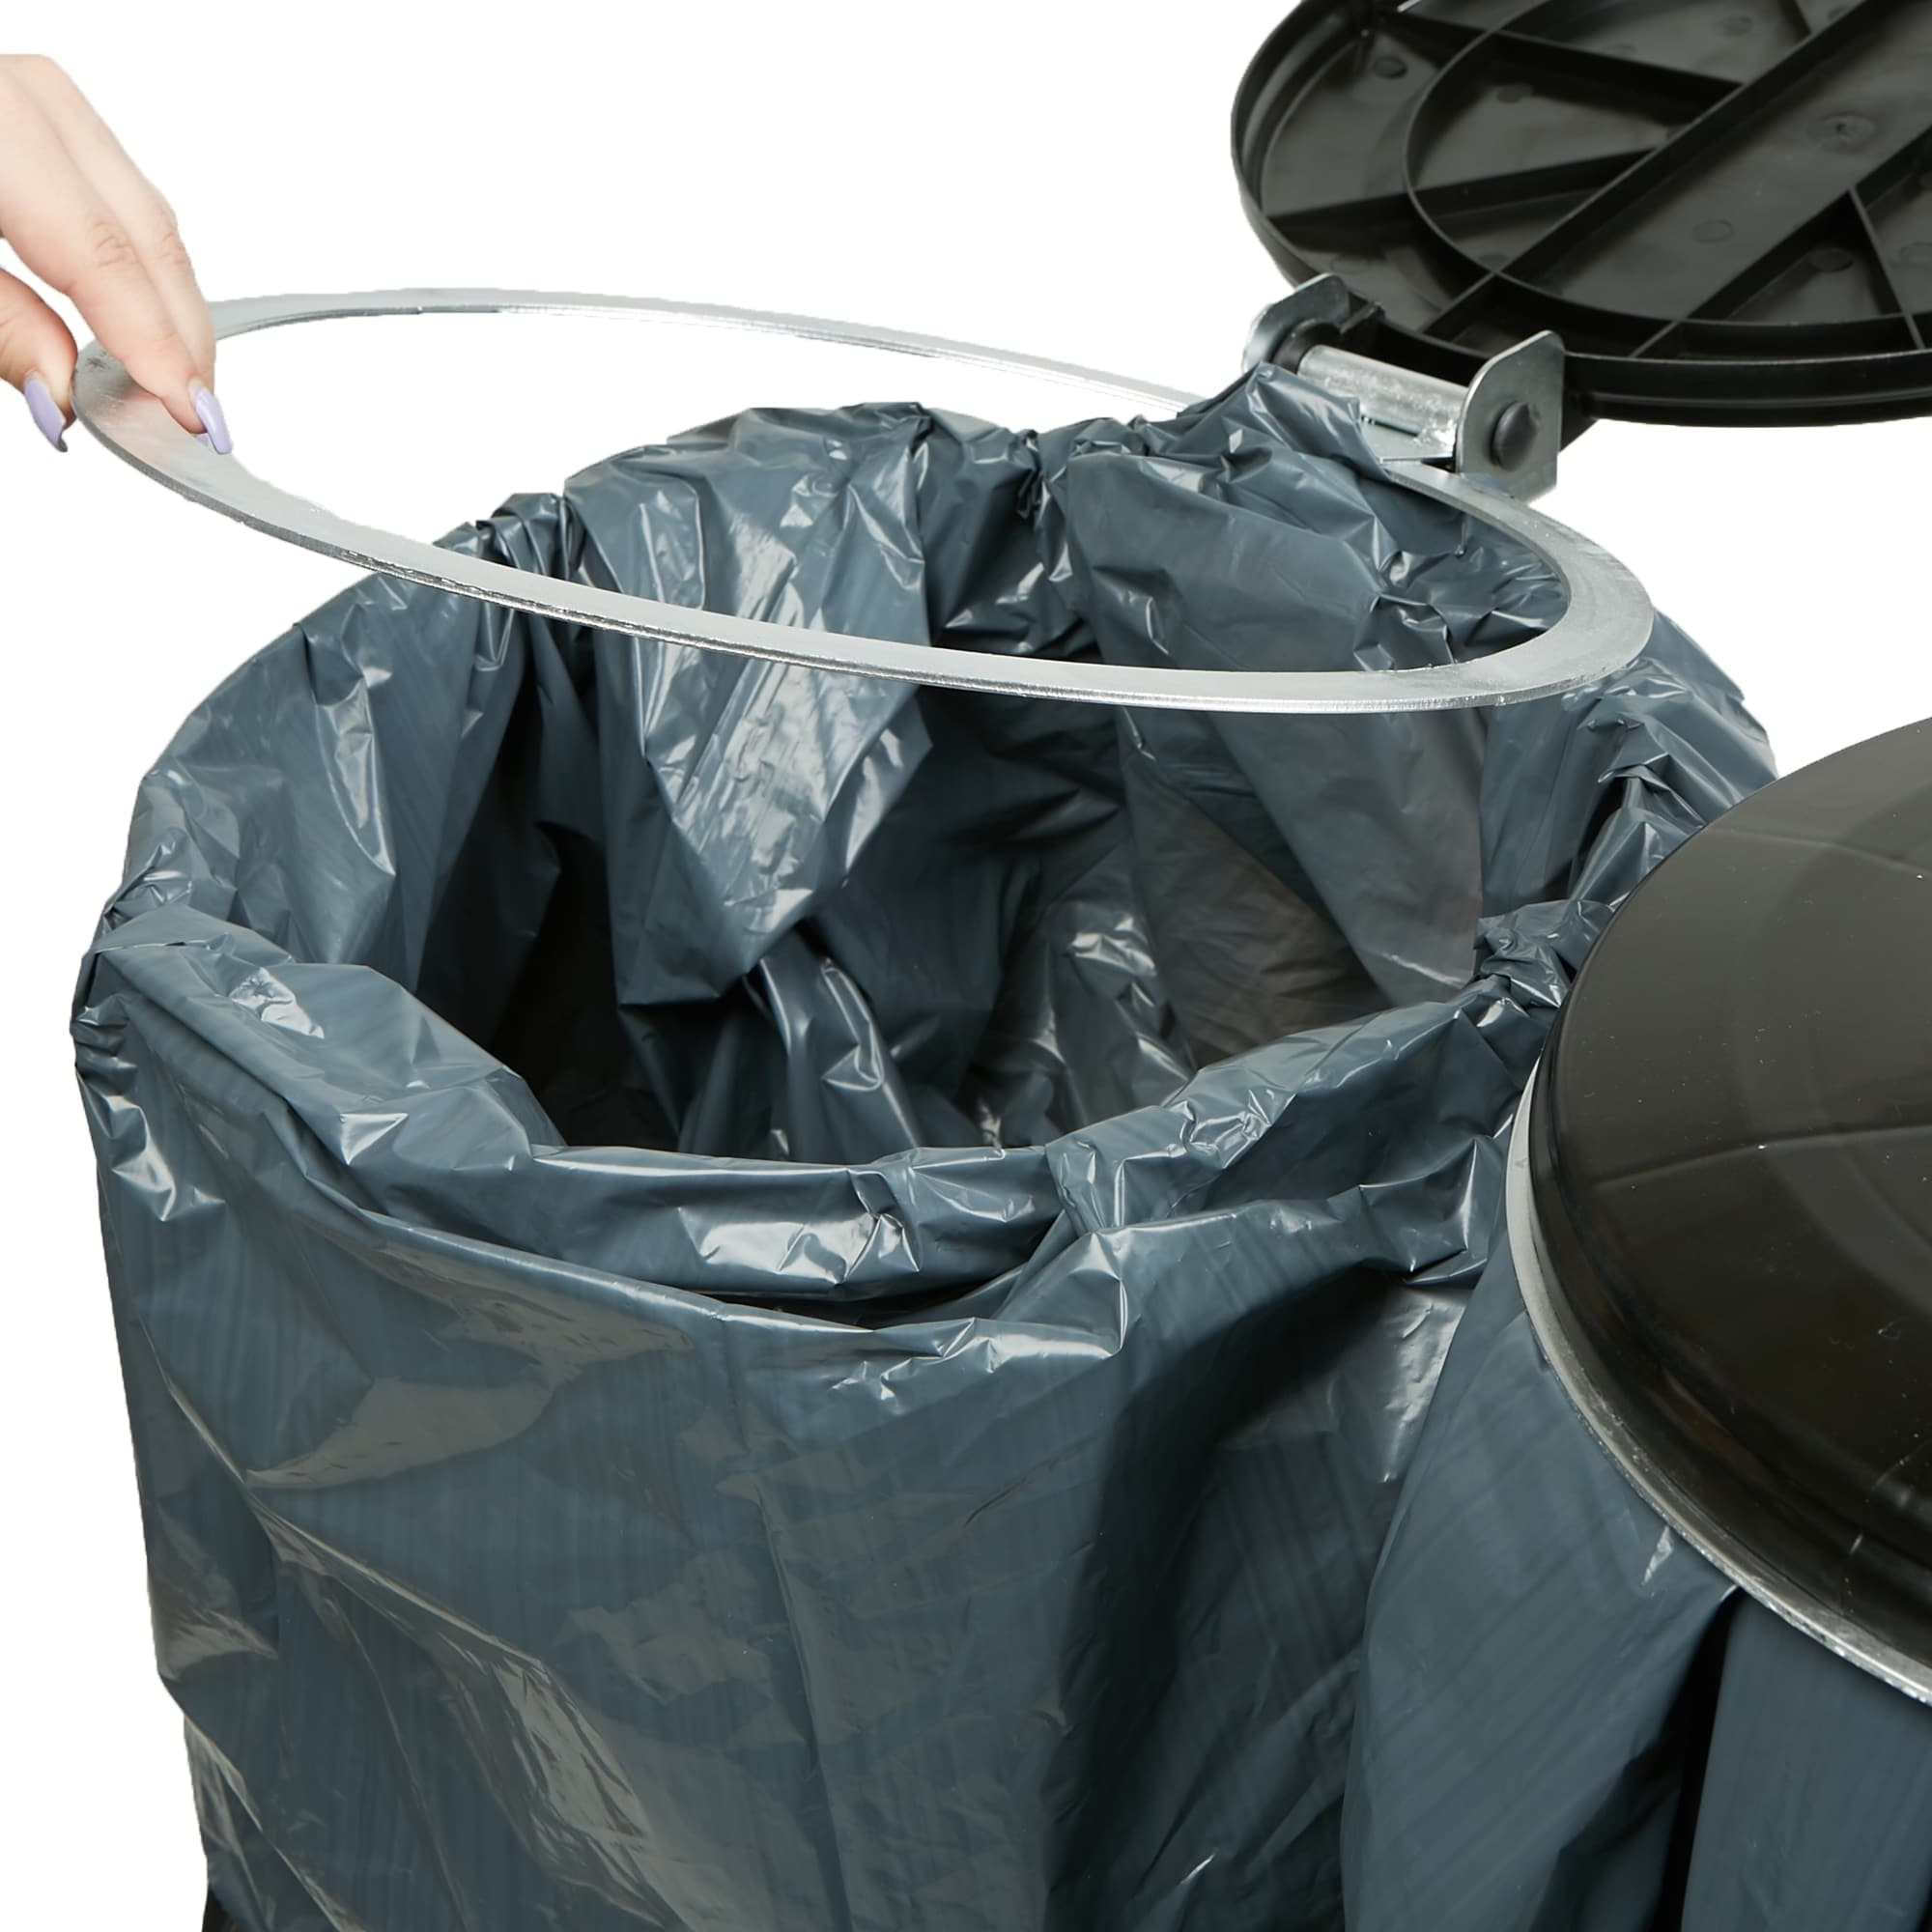 Mind Reader Dual Portable Trash Bag And Garbage Bag Holder With Lids For  Outdoor / Indoor Trash Can, Black   Free Shipping Today   Overstock    27658516